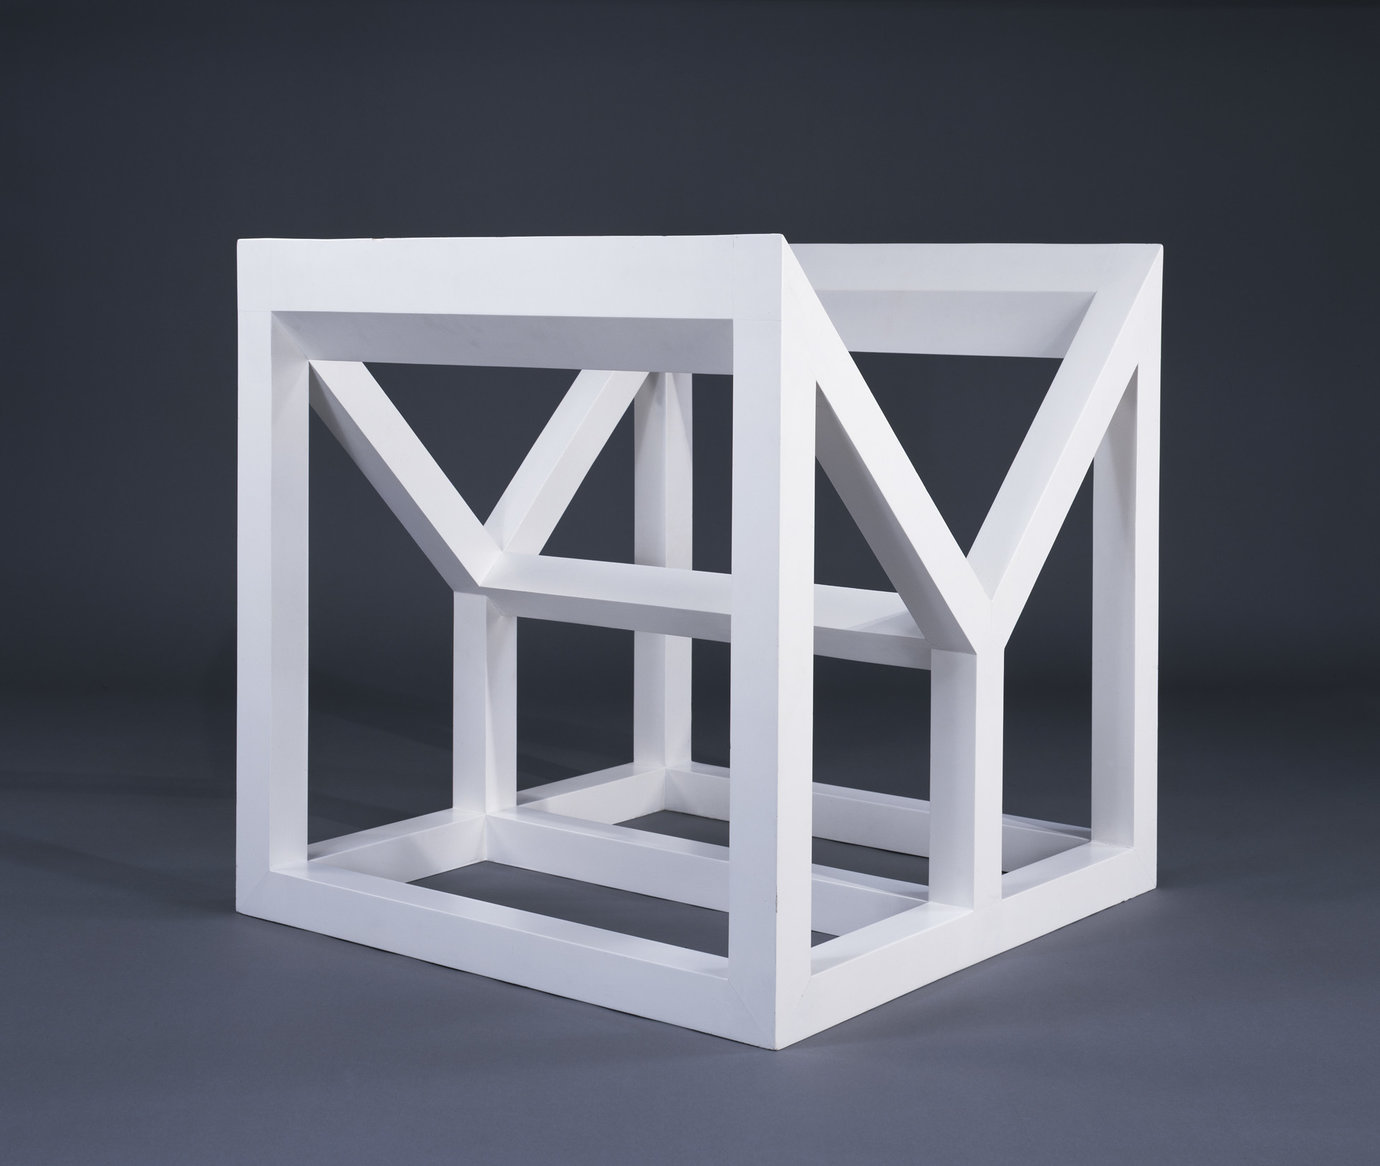 ", 1983. wood painted white, 31-1/2"" x 31-1/2"" x 31-1/2"" (80 cm x 80 cm x 80 cm)."